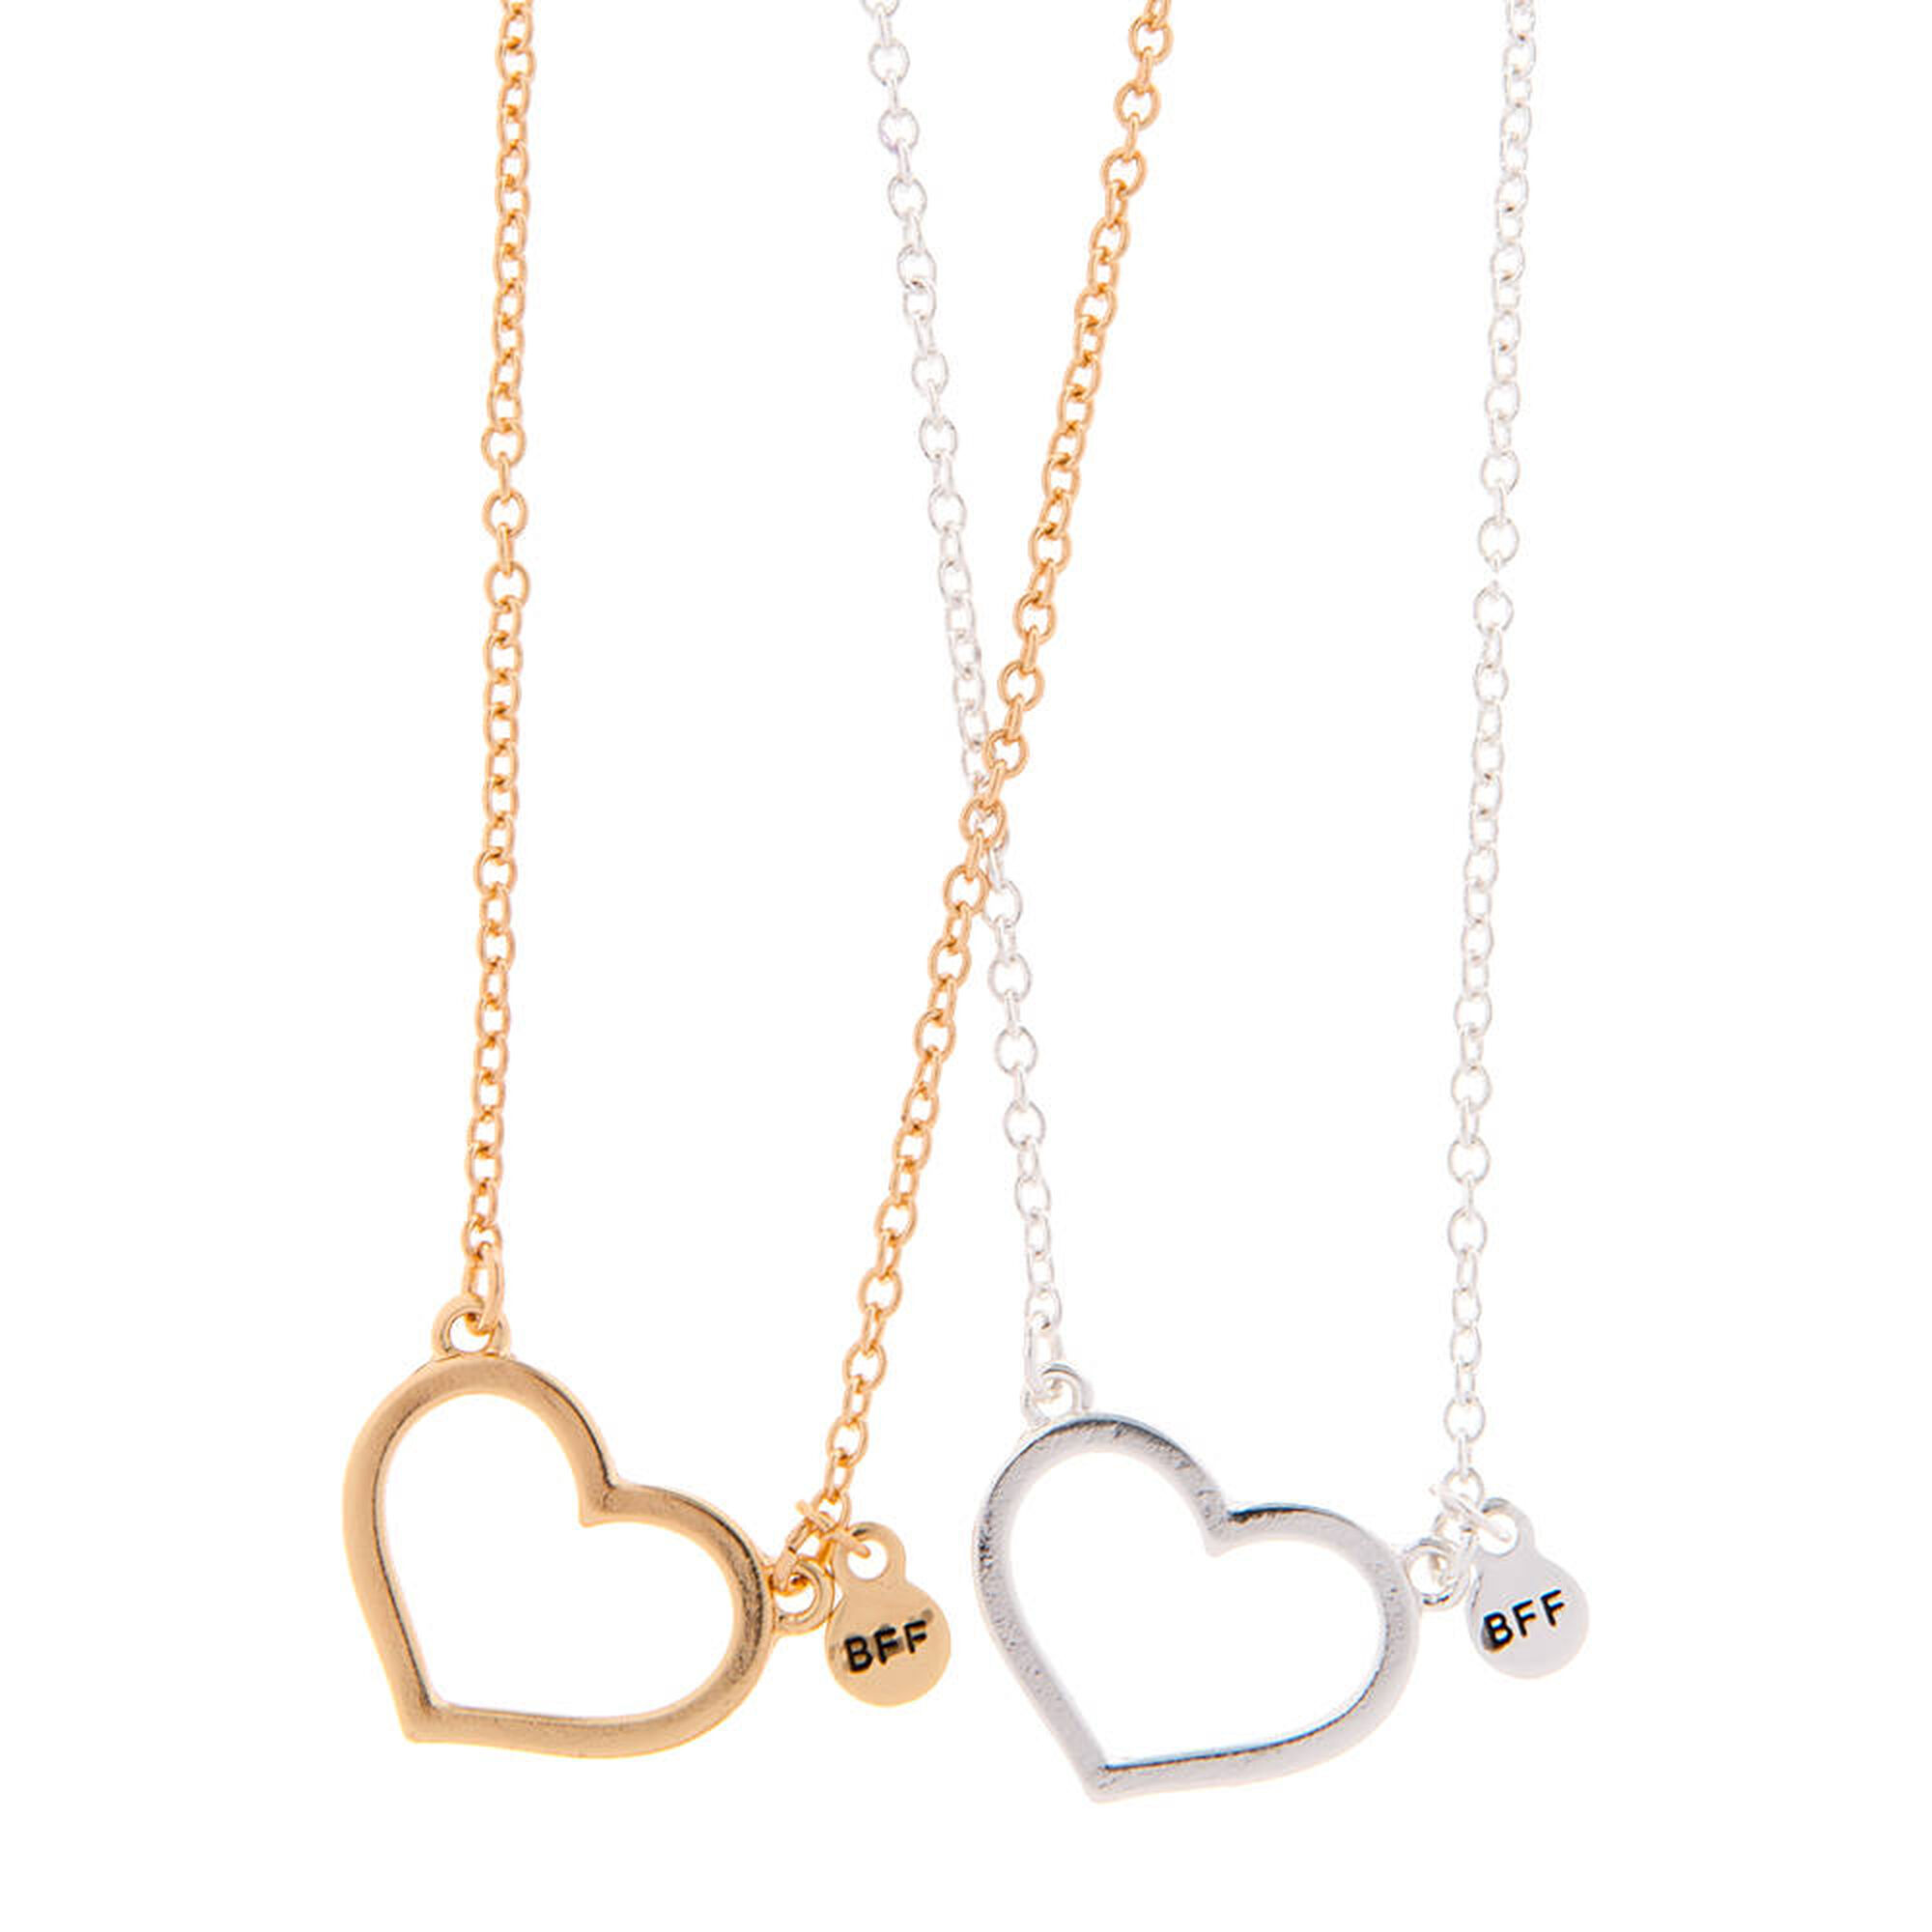 products jewelry and tiffany co enlarged open pendant heart necklace necklaces